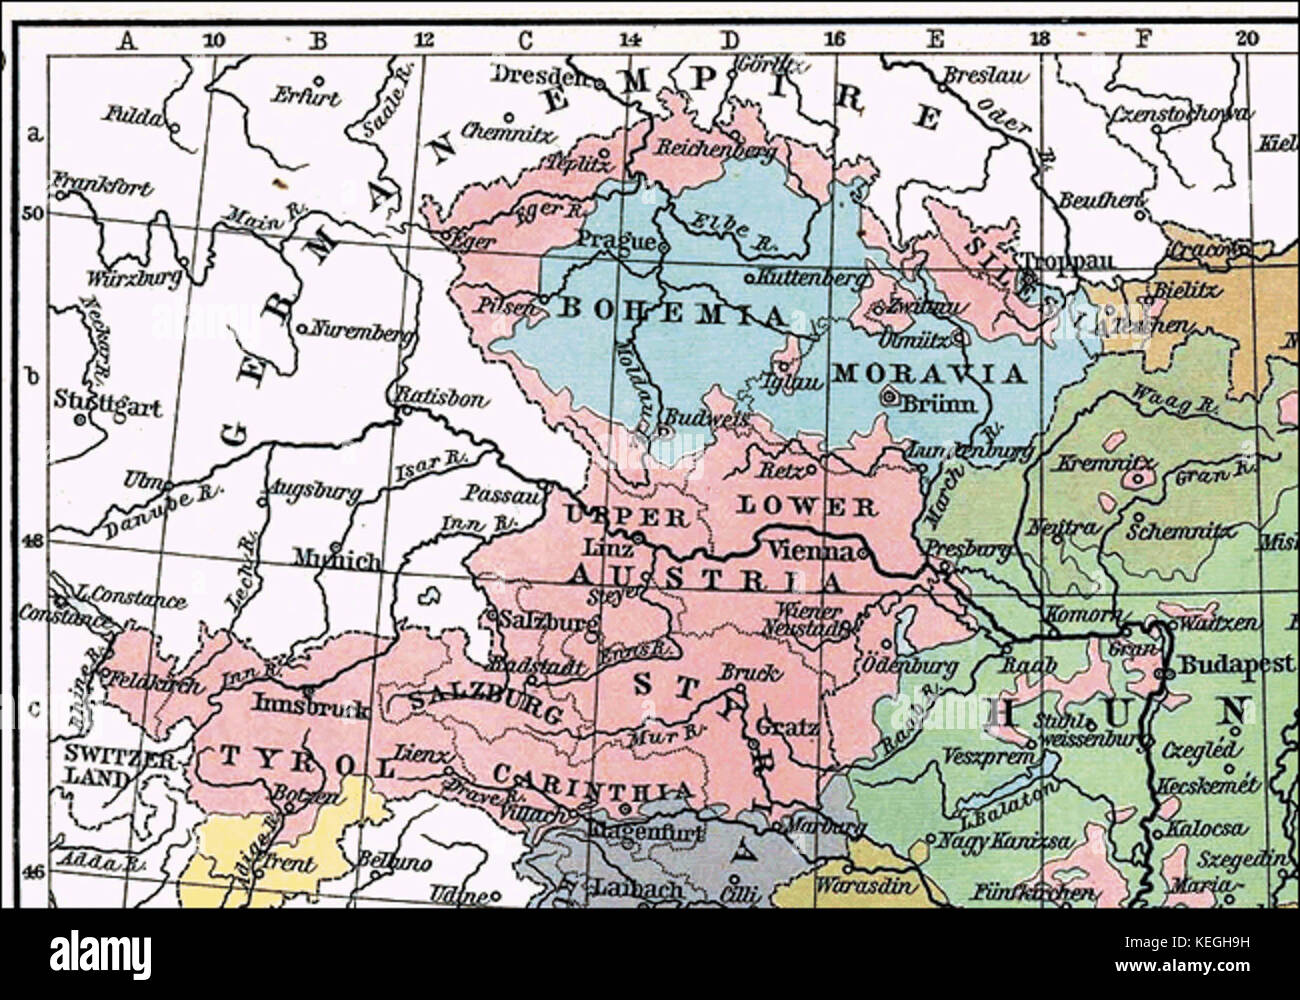 Austro Hungarian Empire Map Nebraska Time Zone Map Map Of Upstate - Map of austria hungary 1900 1907